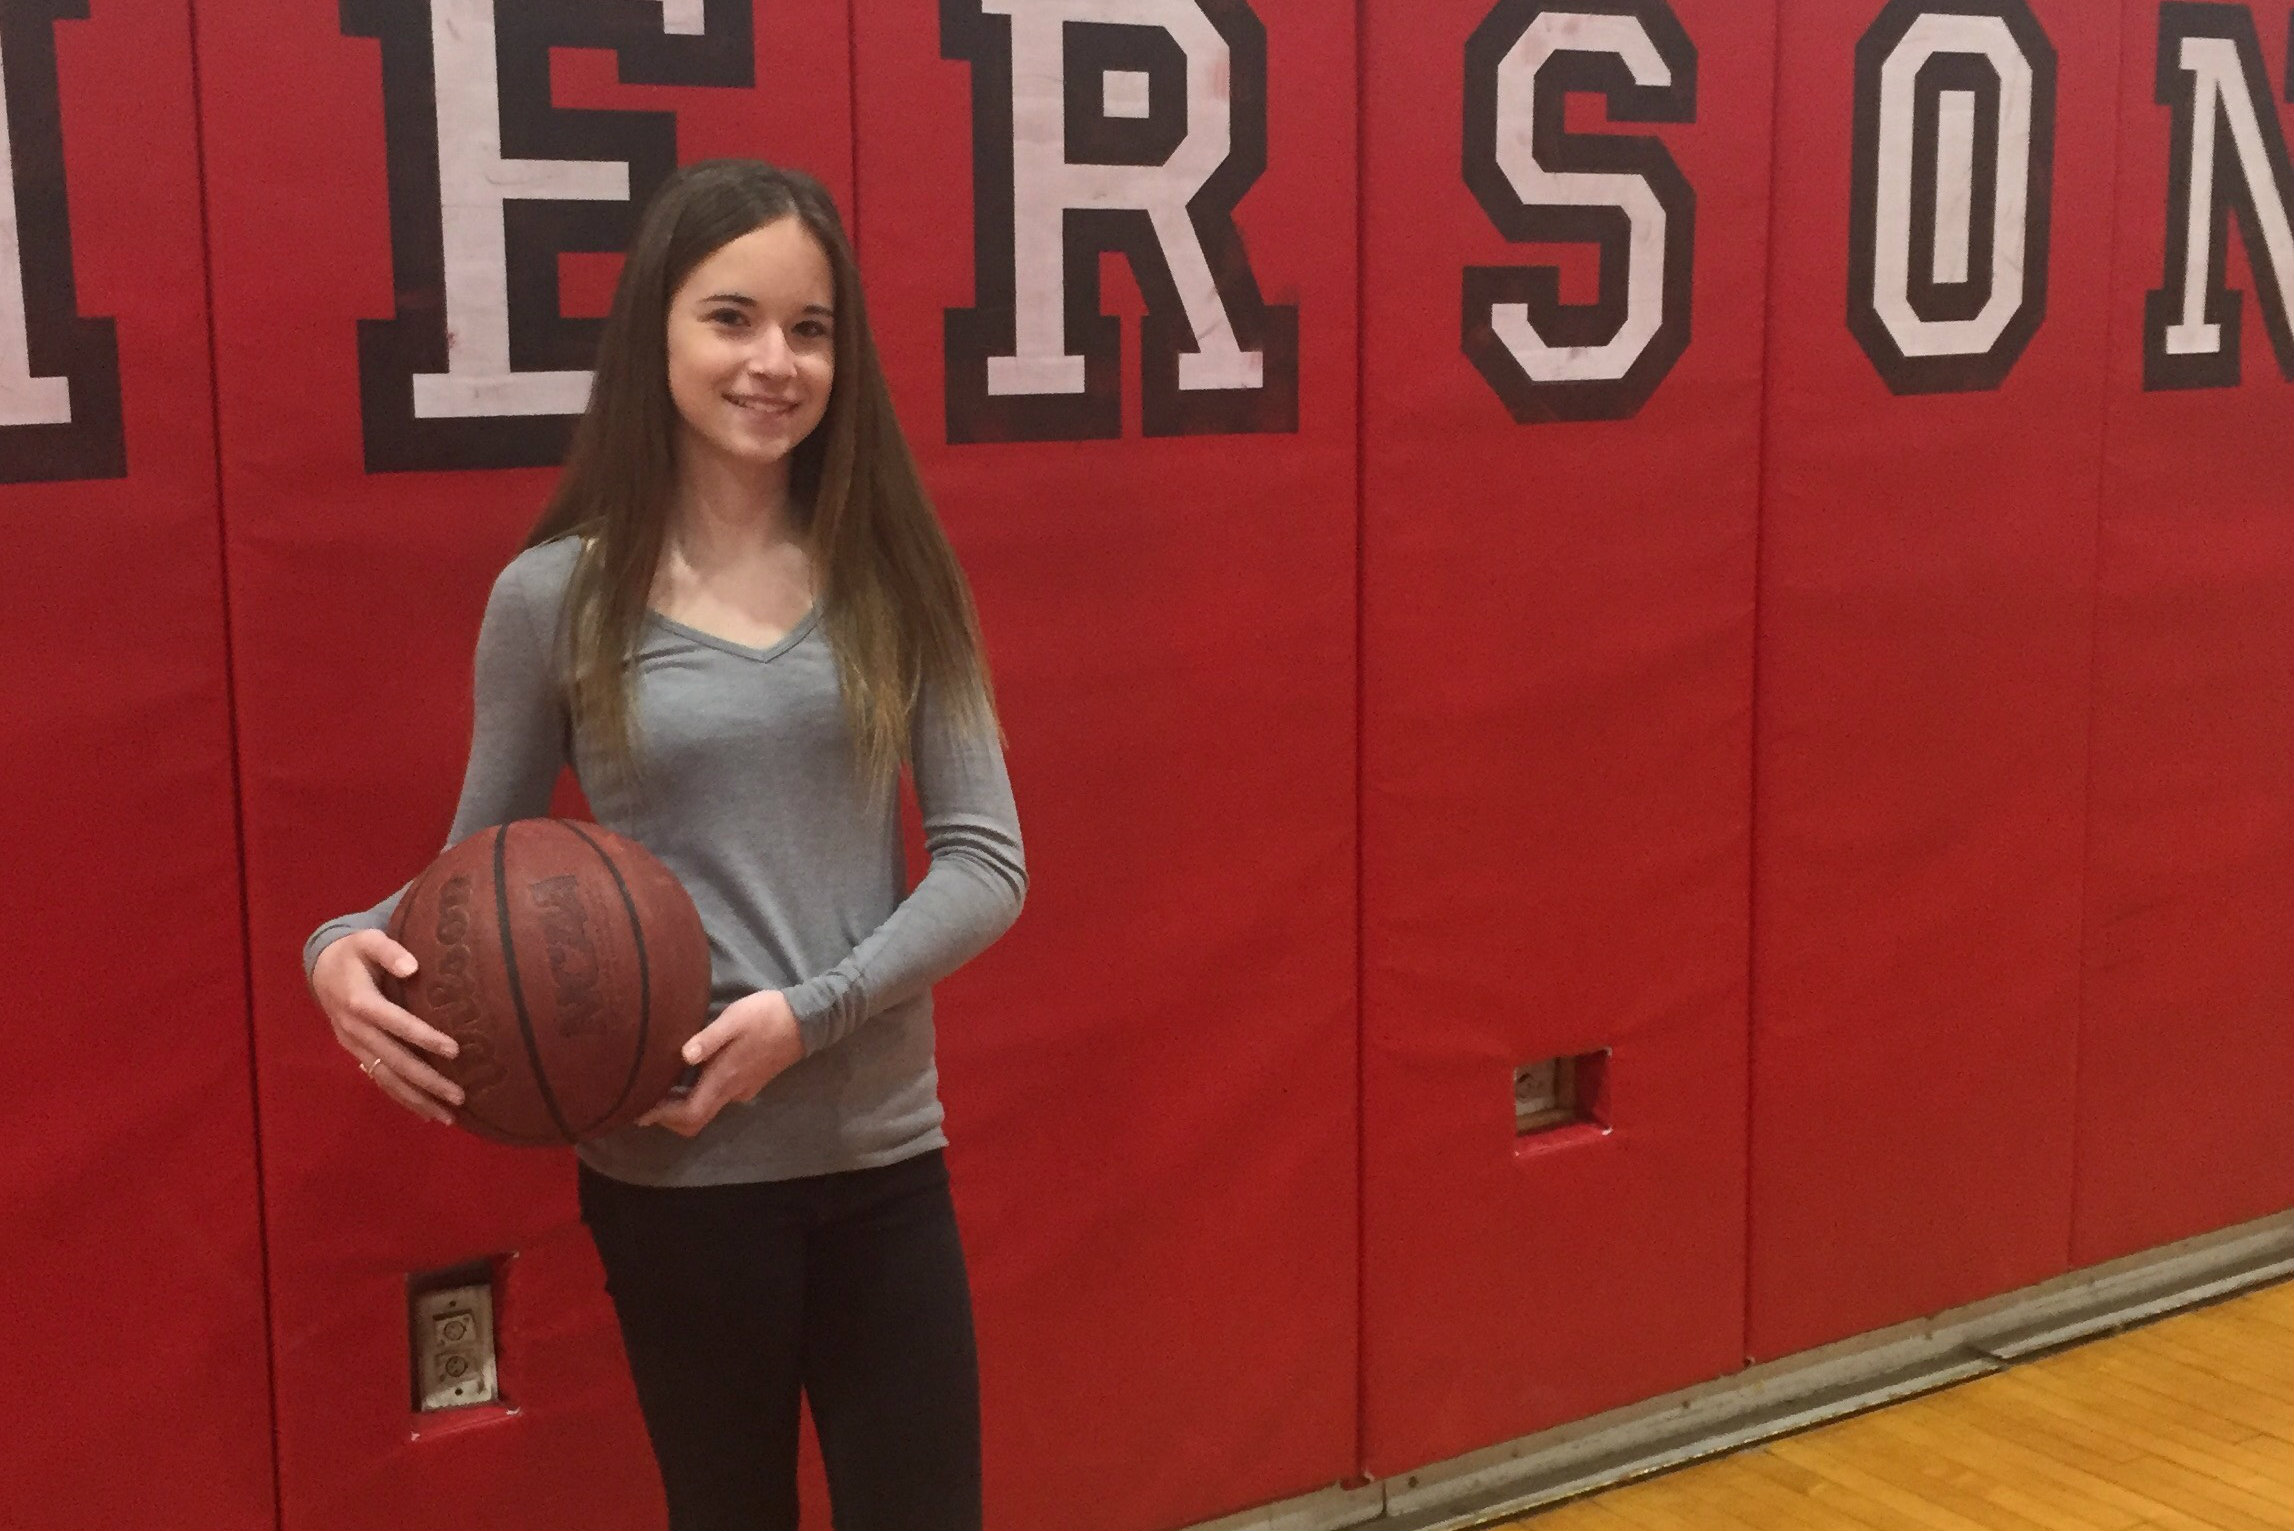 Emma Worthington is thinking about playing basketball for the Lady Cavos. Worthington plays guard for her current team.